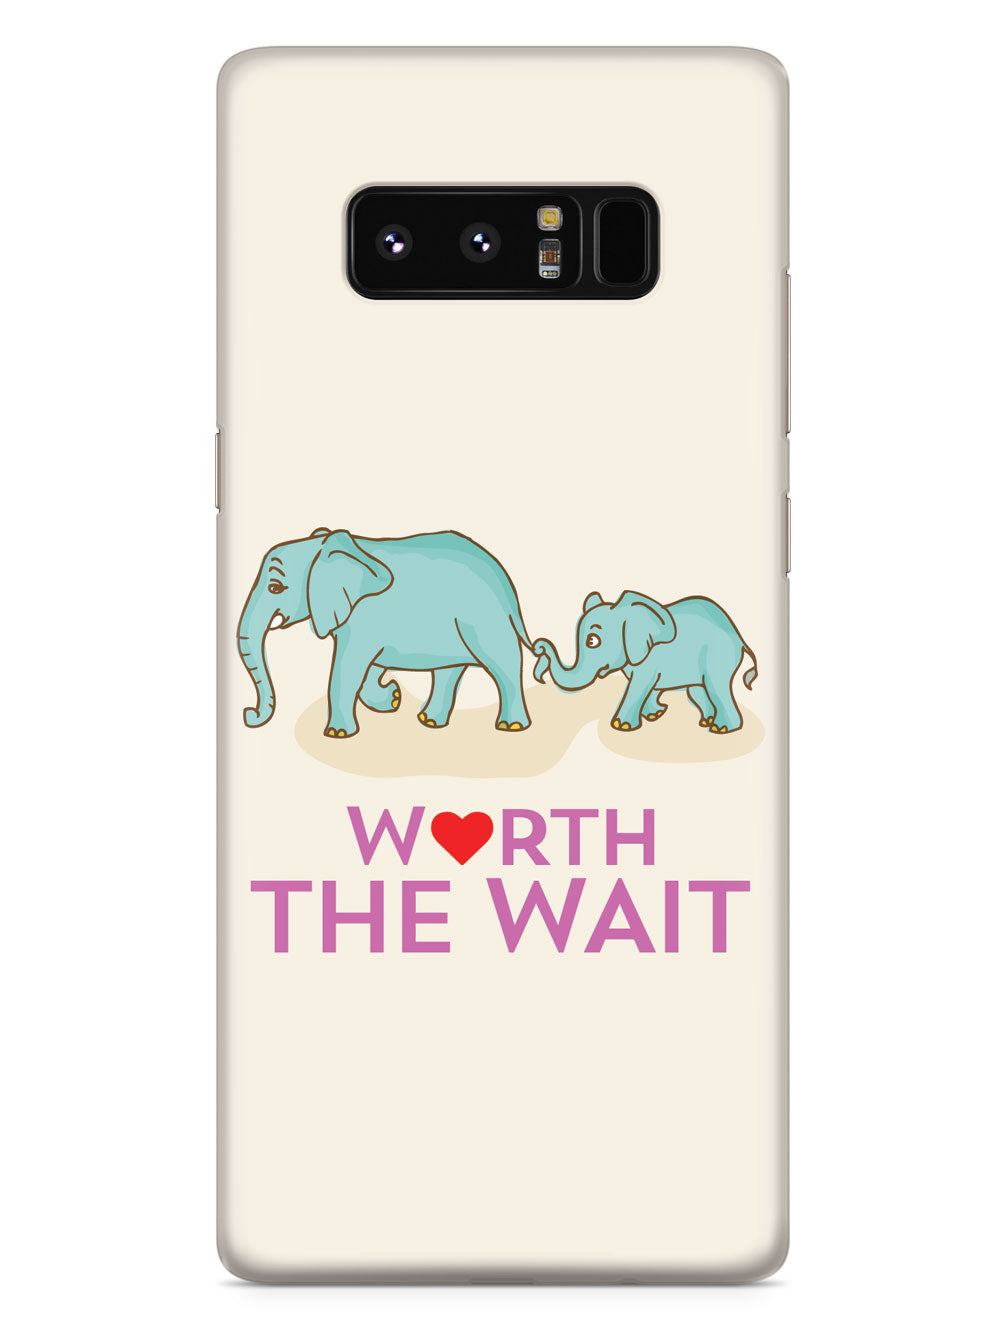 Worth The Wait - Elephants - Adoption - Black Case